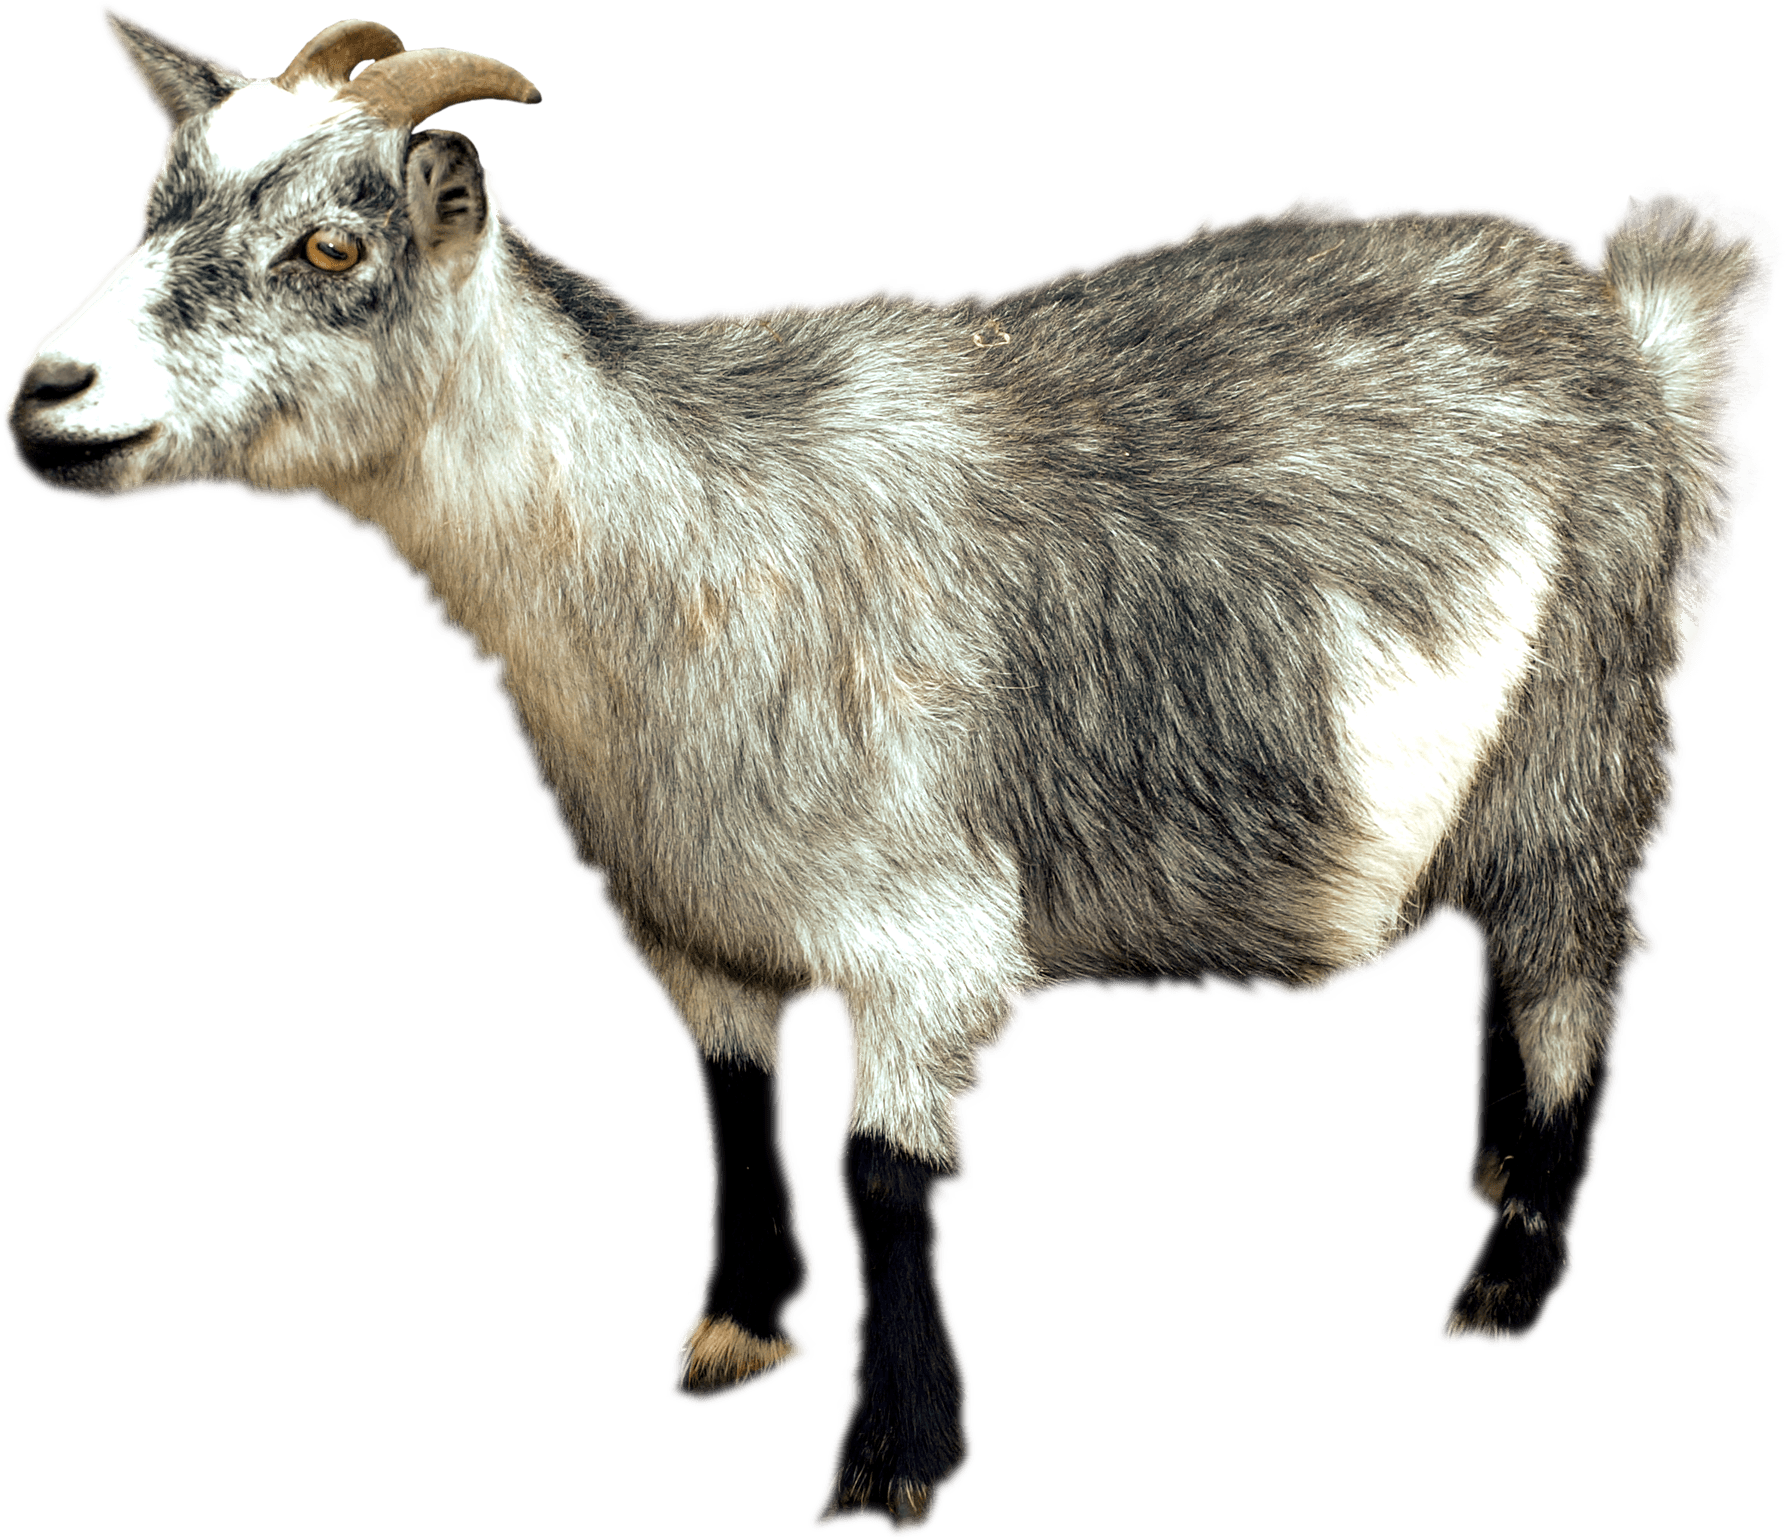 Baby goat png. Sideview transparent stickpng animals